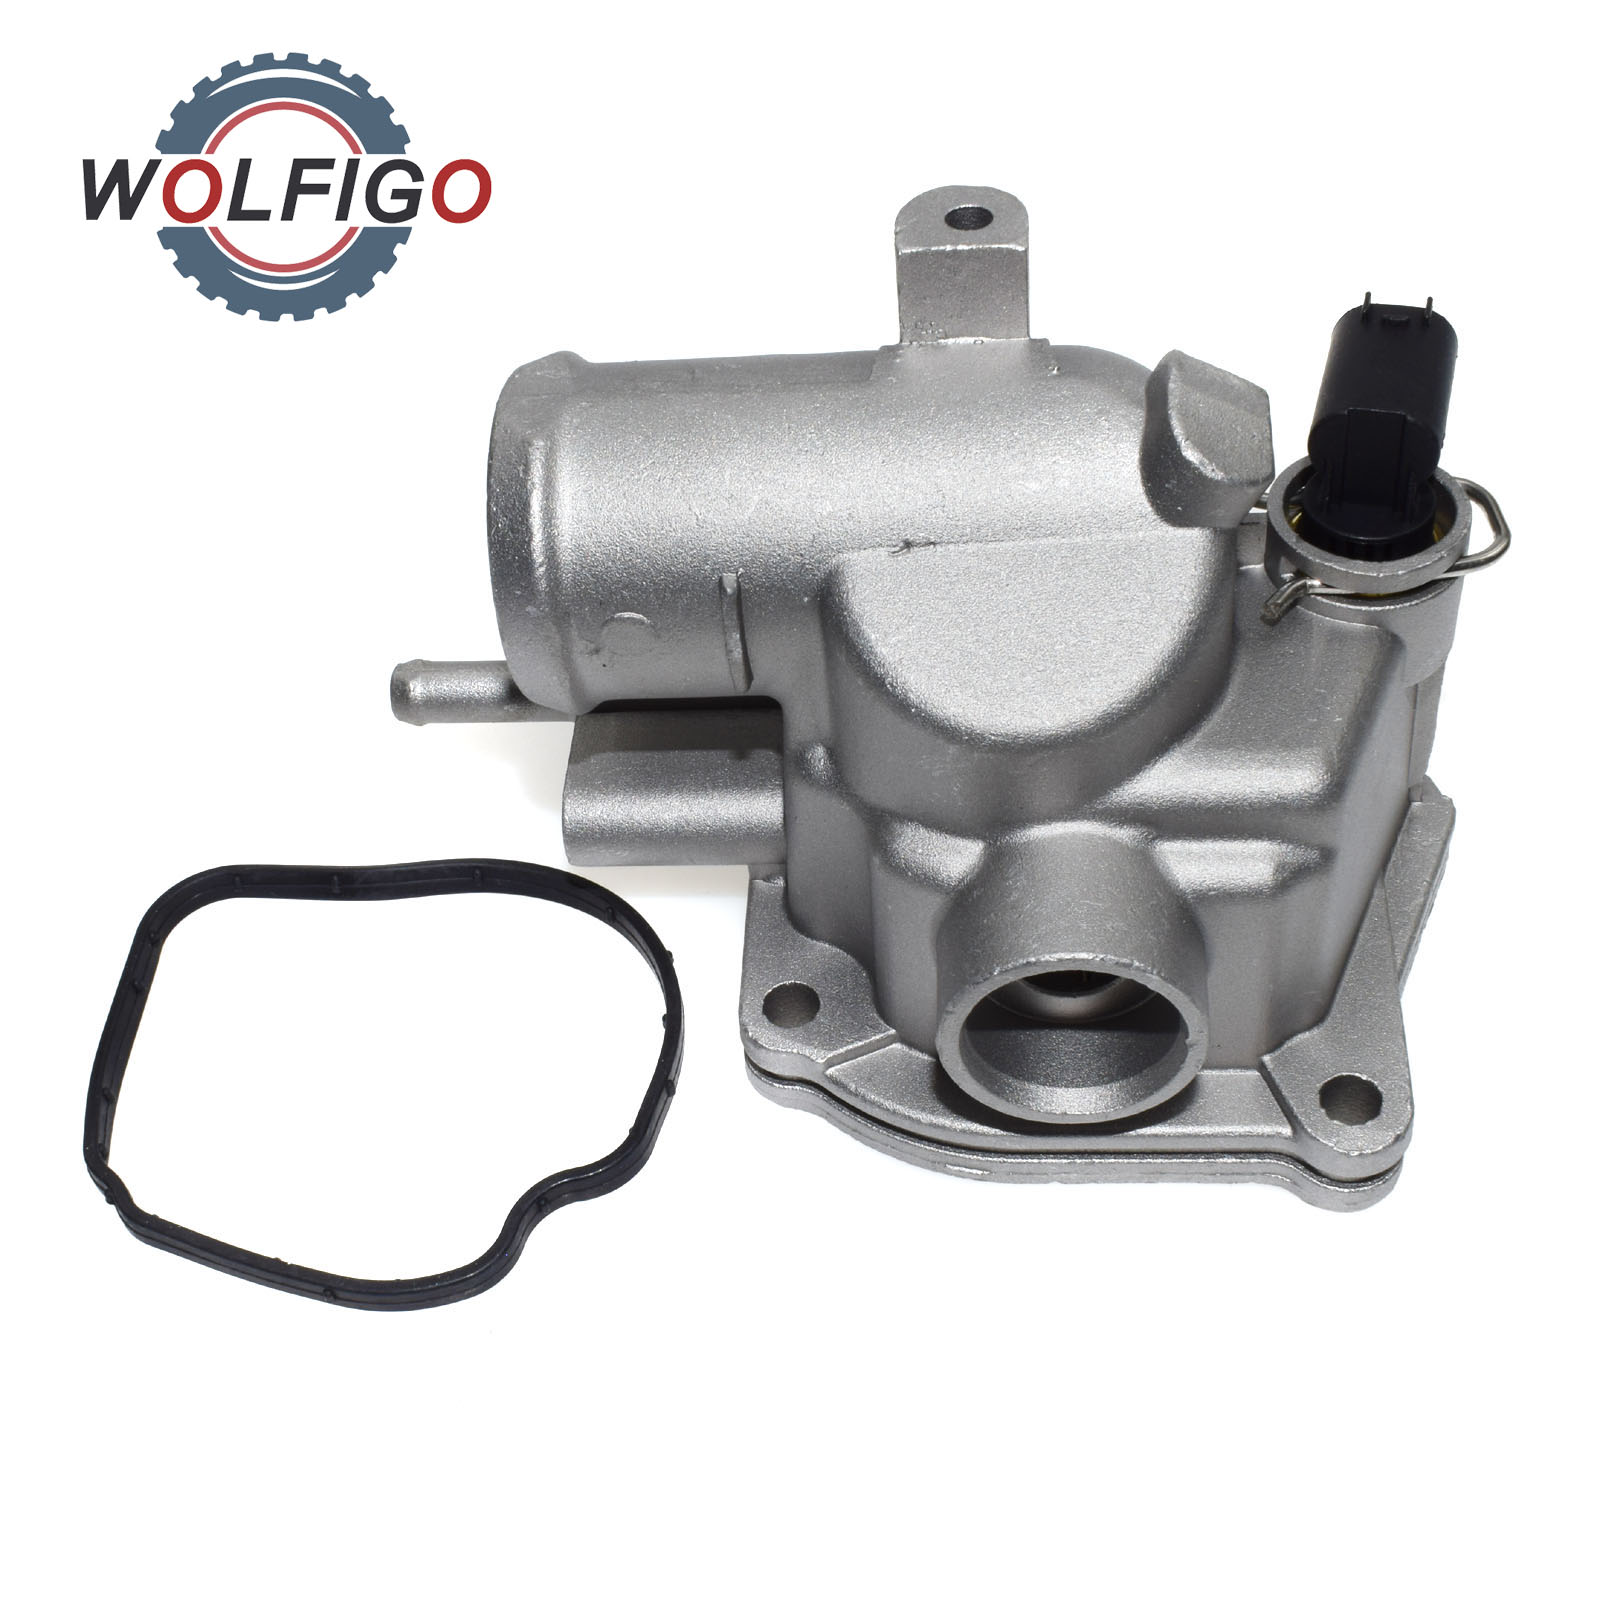 WOLFIGO New Engine Coolant Thermostat 6112000515 6112000315 For Mercedes  Benz S Class Saloon W210 S210 E200 E220 E270T CDI-in Thermostats & Parts  from ...